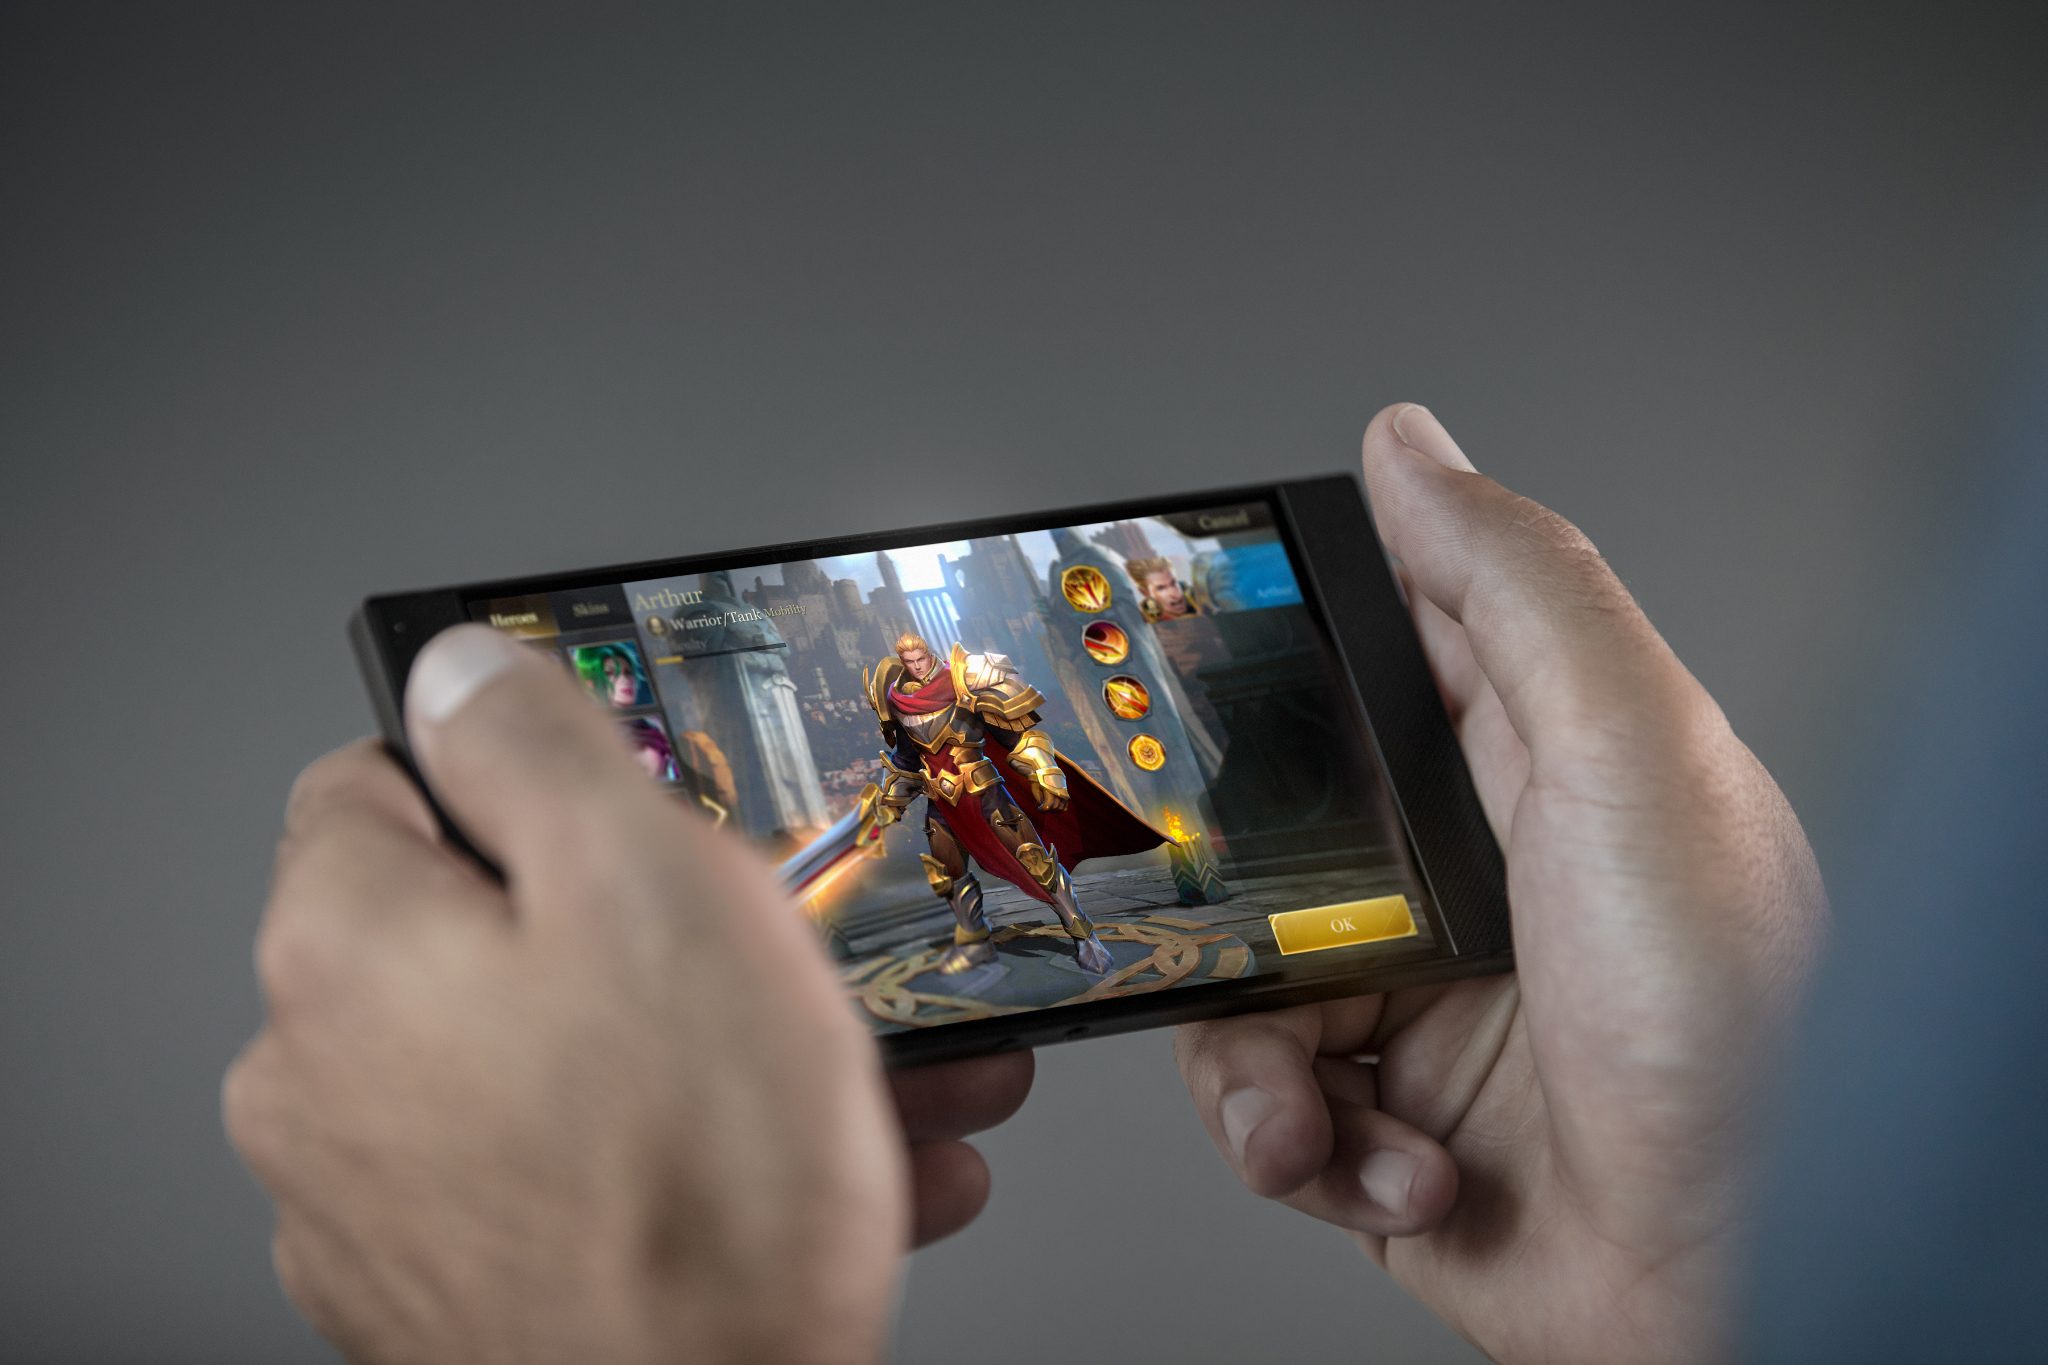 Pubg Mobile Hdr Note 8: Razer Phone Vs. Galaxy Note 8: Can New Blood Topple The